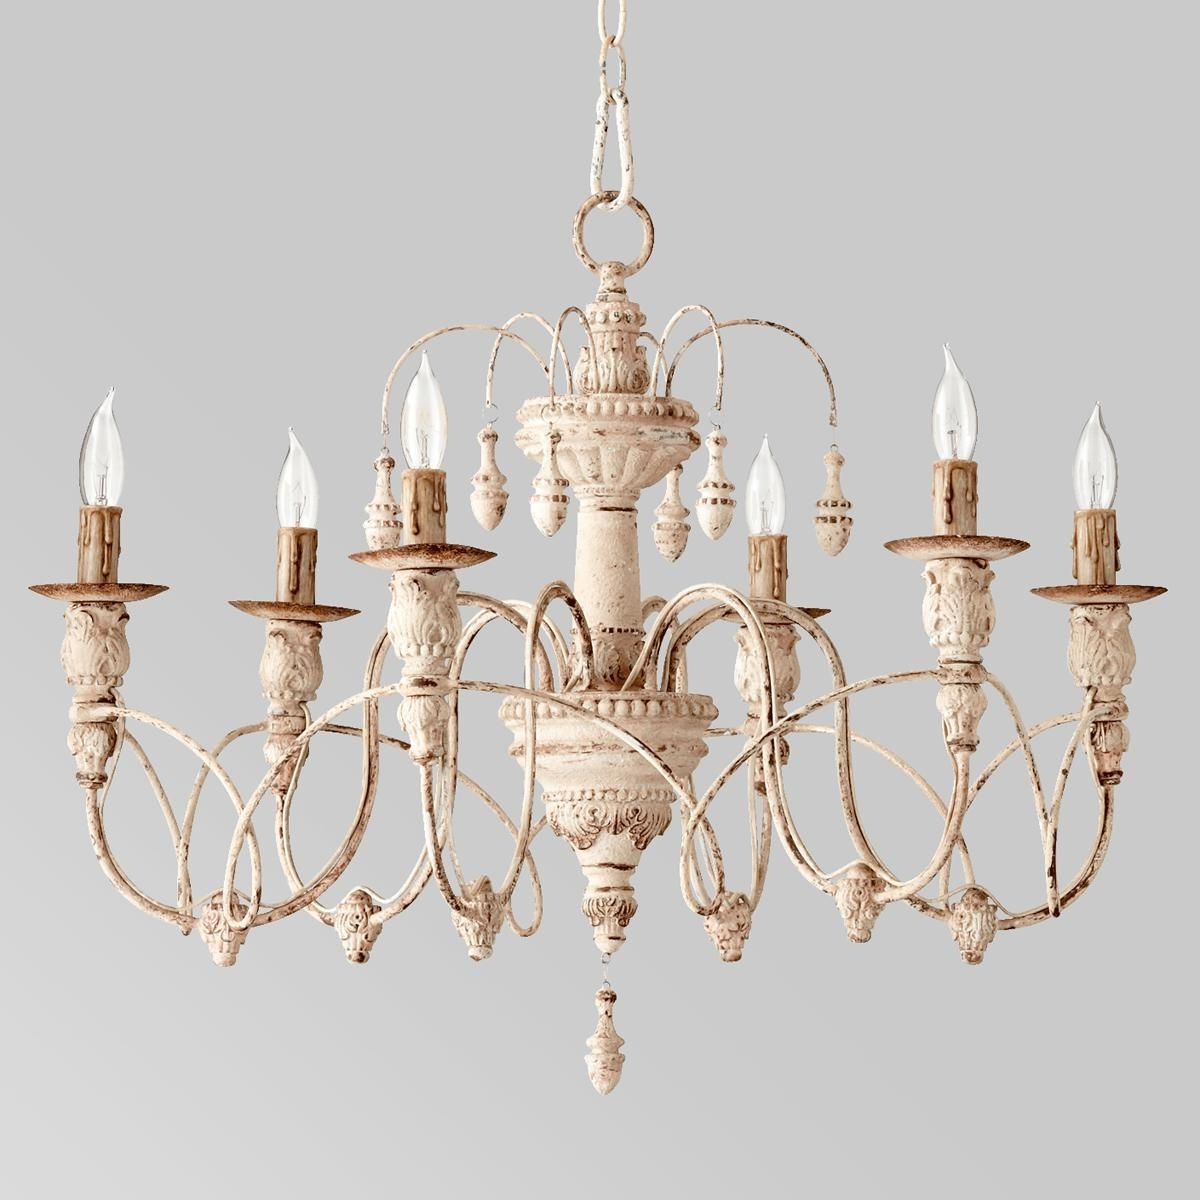 2018 Candle Look Chandeliers Throughout Gustavian Style White Chandelier (View 1 of 20)